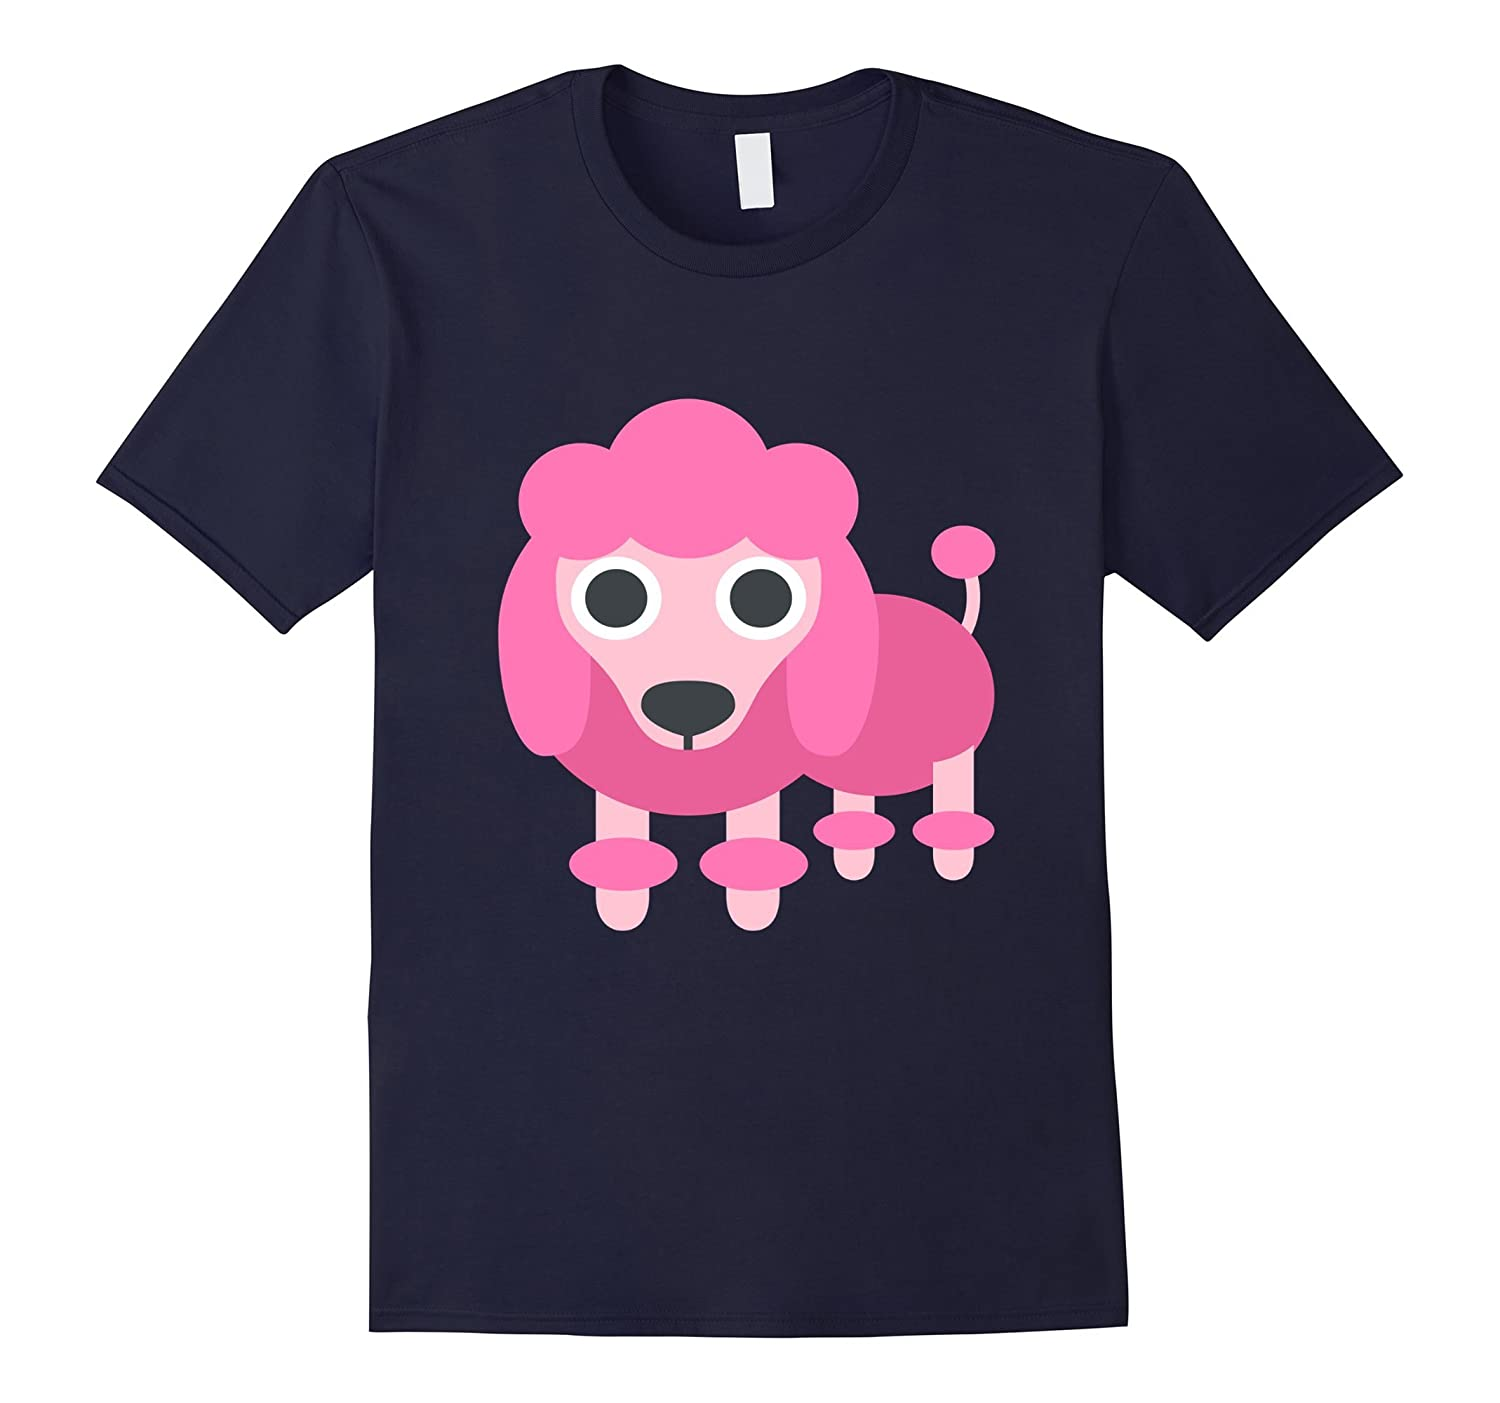 Pink Poodle Dog Cute Emoji Pet Puppy T Shirt Tee Kids Animal-ANZ